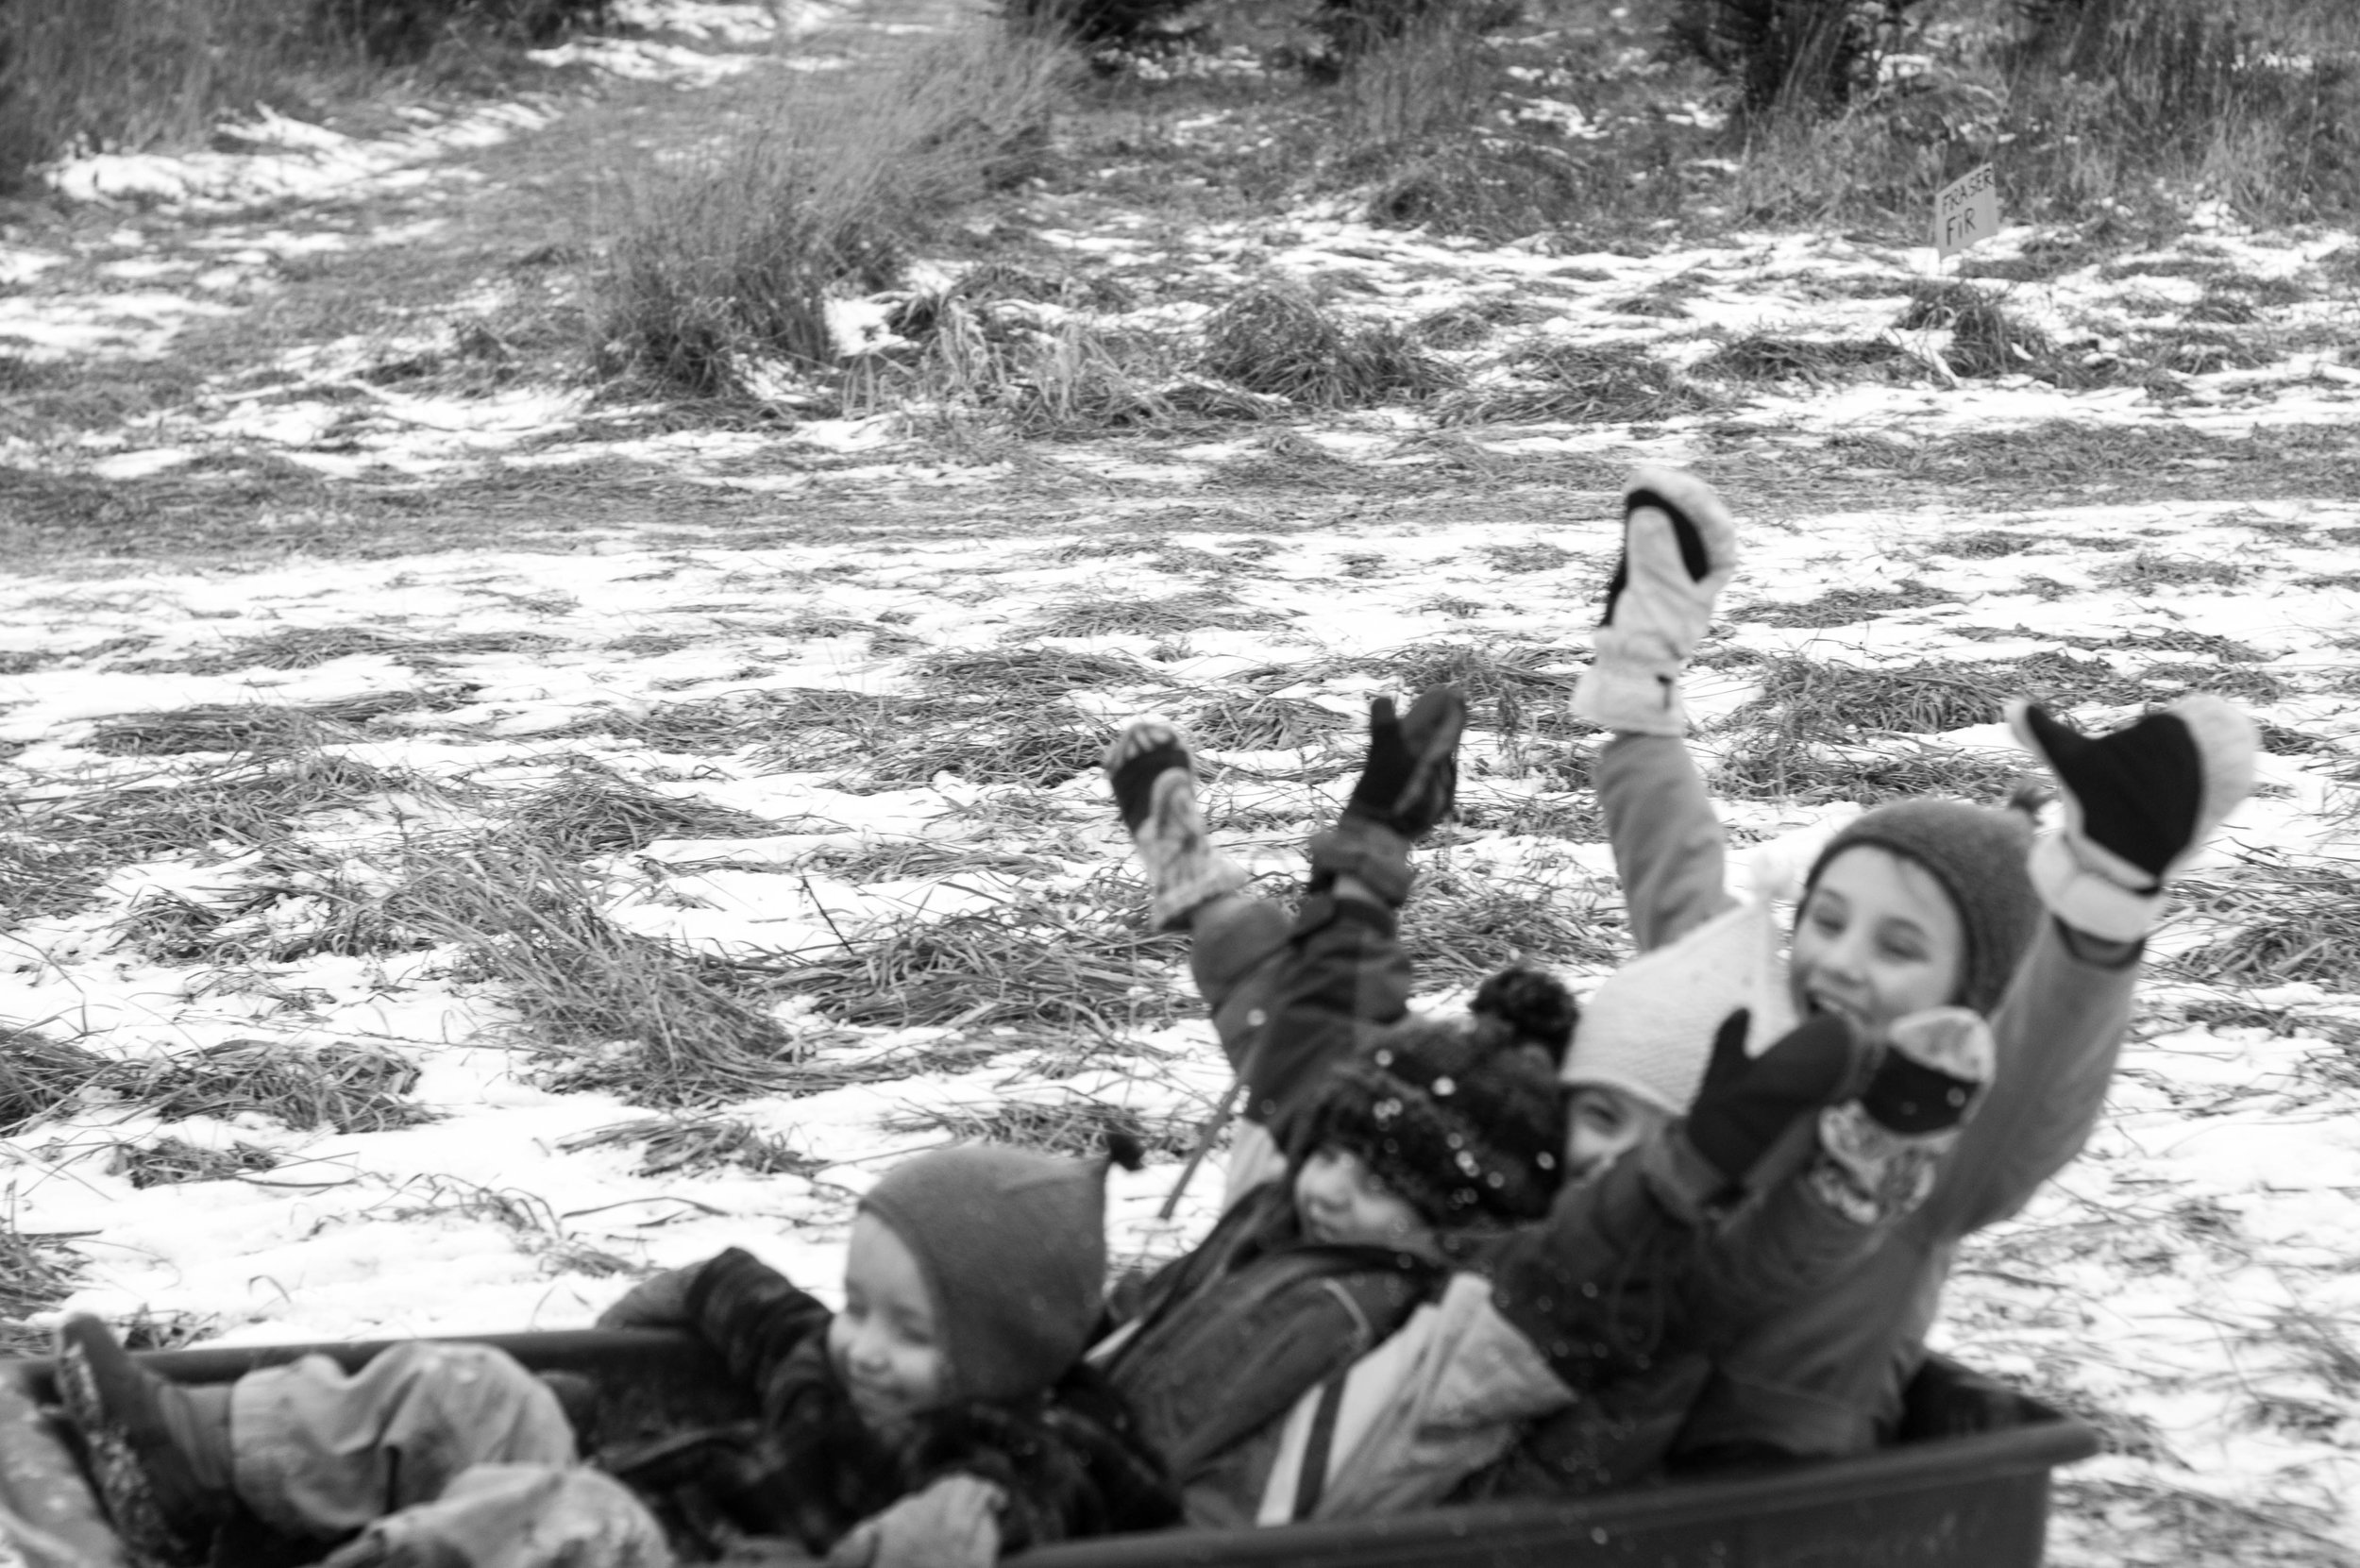 Christmas Tree Chop Festive Kids Sledding by Samantha Spigos